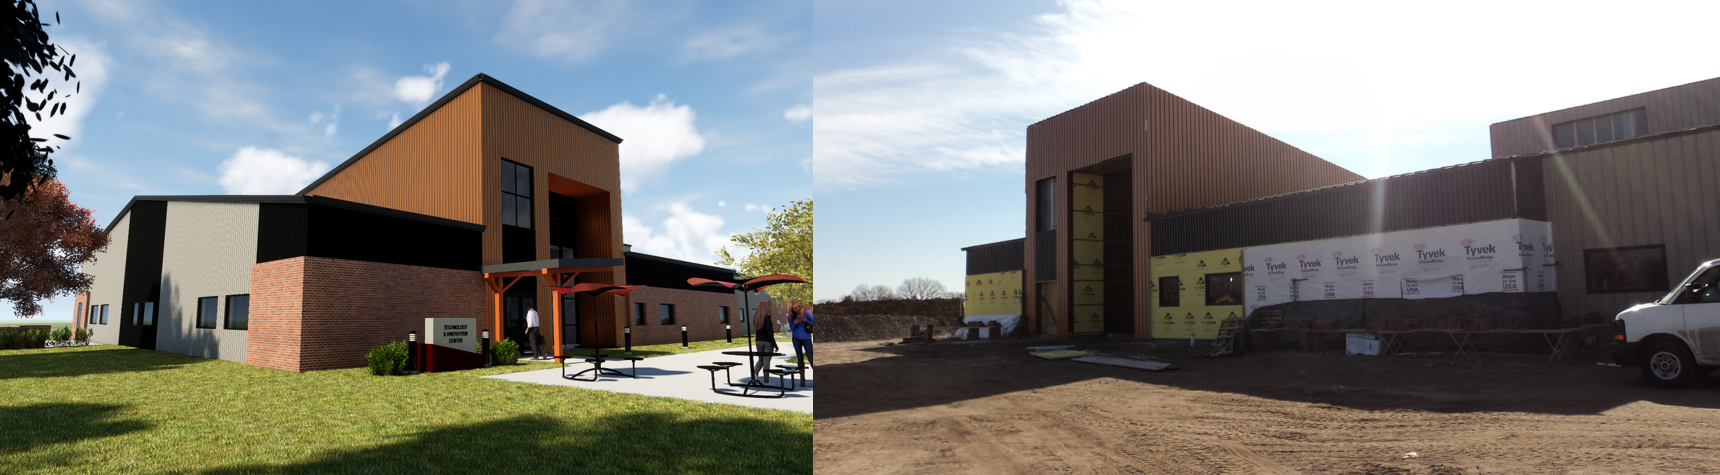 Cowley College Sumner Campus - This project utilized CMAR in order to complete the project as quickly as possible.